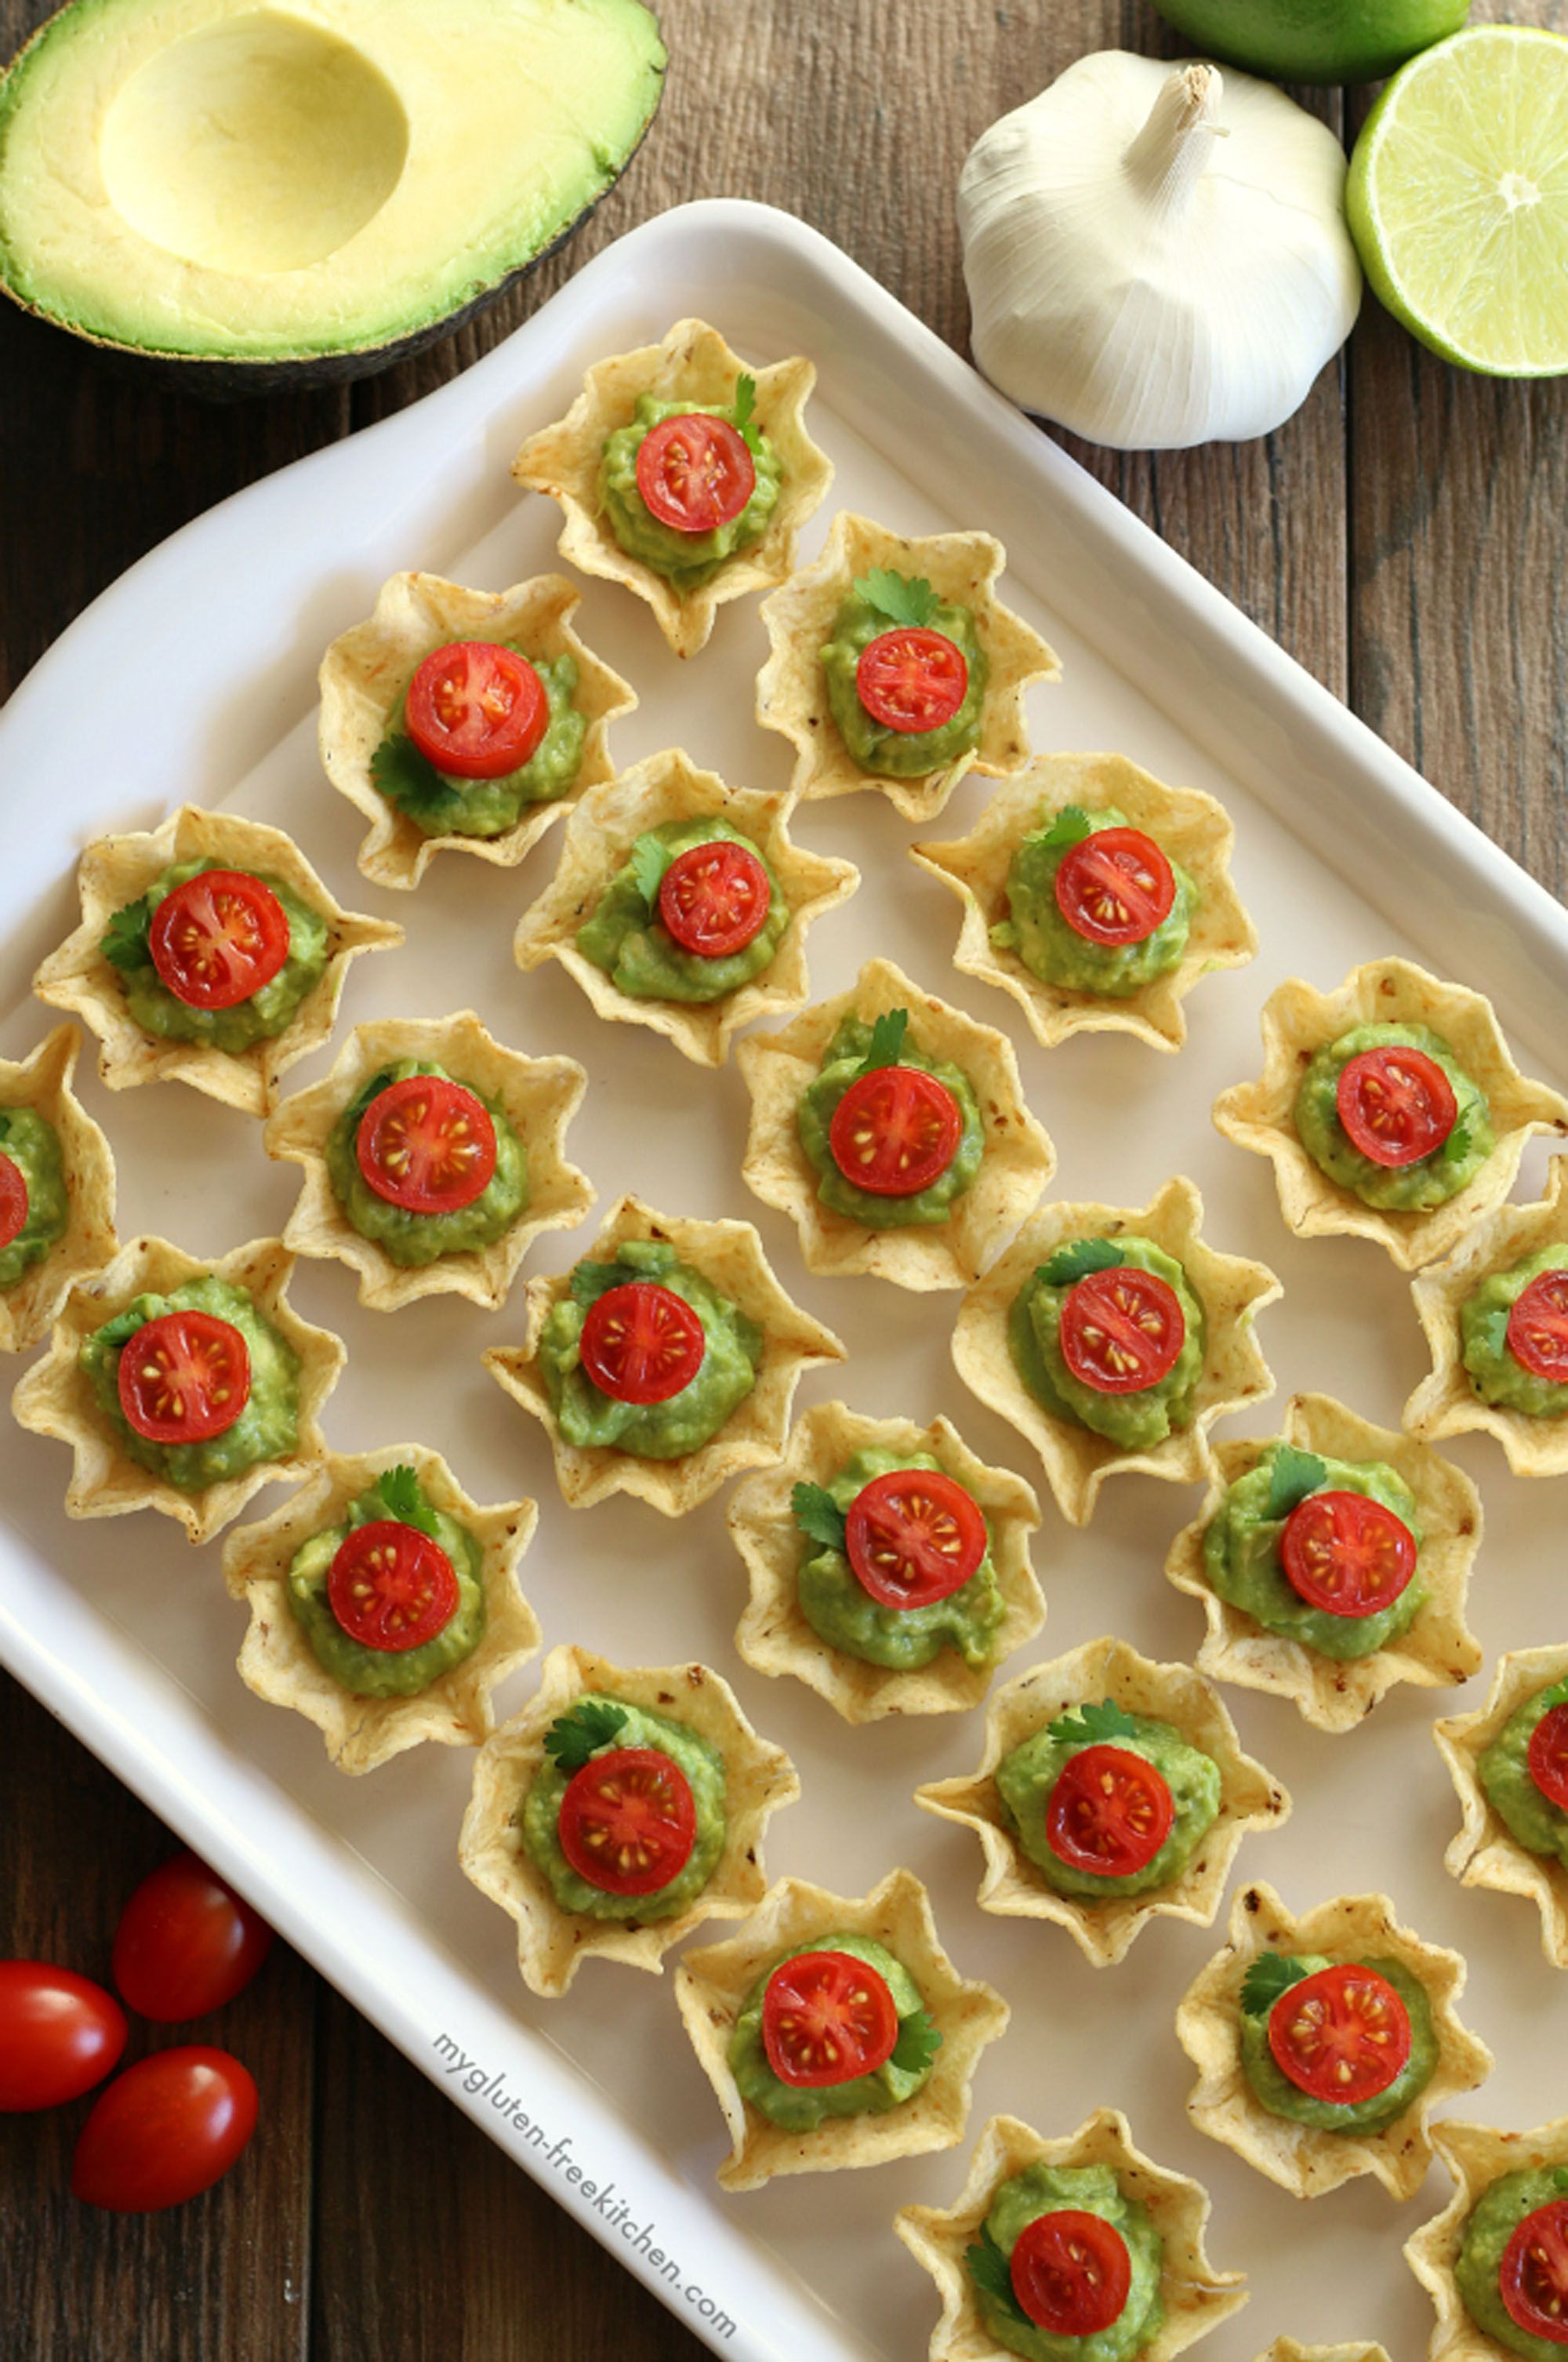 Healthy Christmas Appetizers Pinterest 85 Easy Christmas Appetizer Ideas Best Holiday Appetizer Recipes